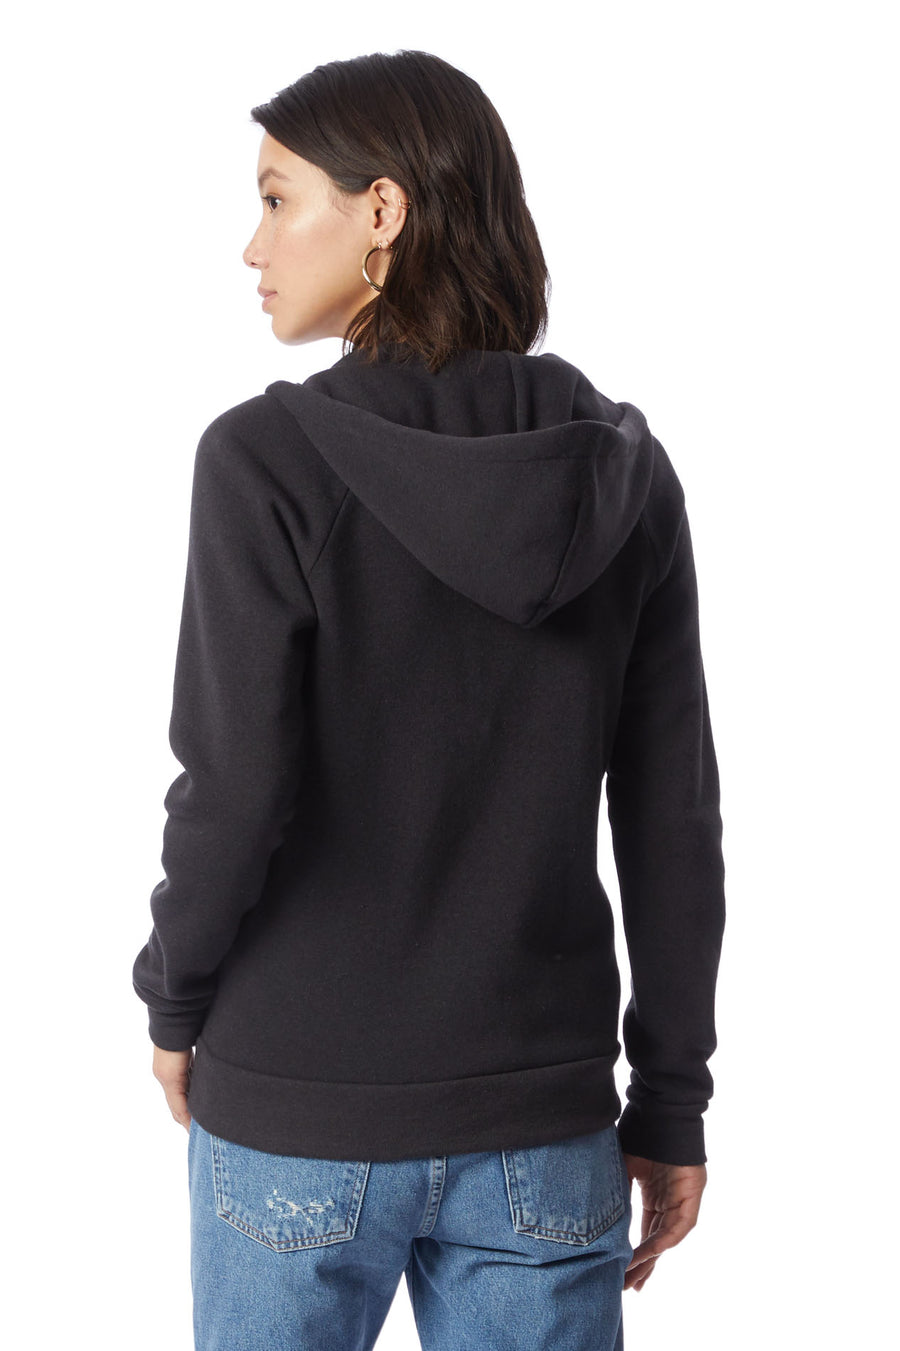 Adrian Eco Fleece Hoodie - Eco True Black - Pavilion